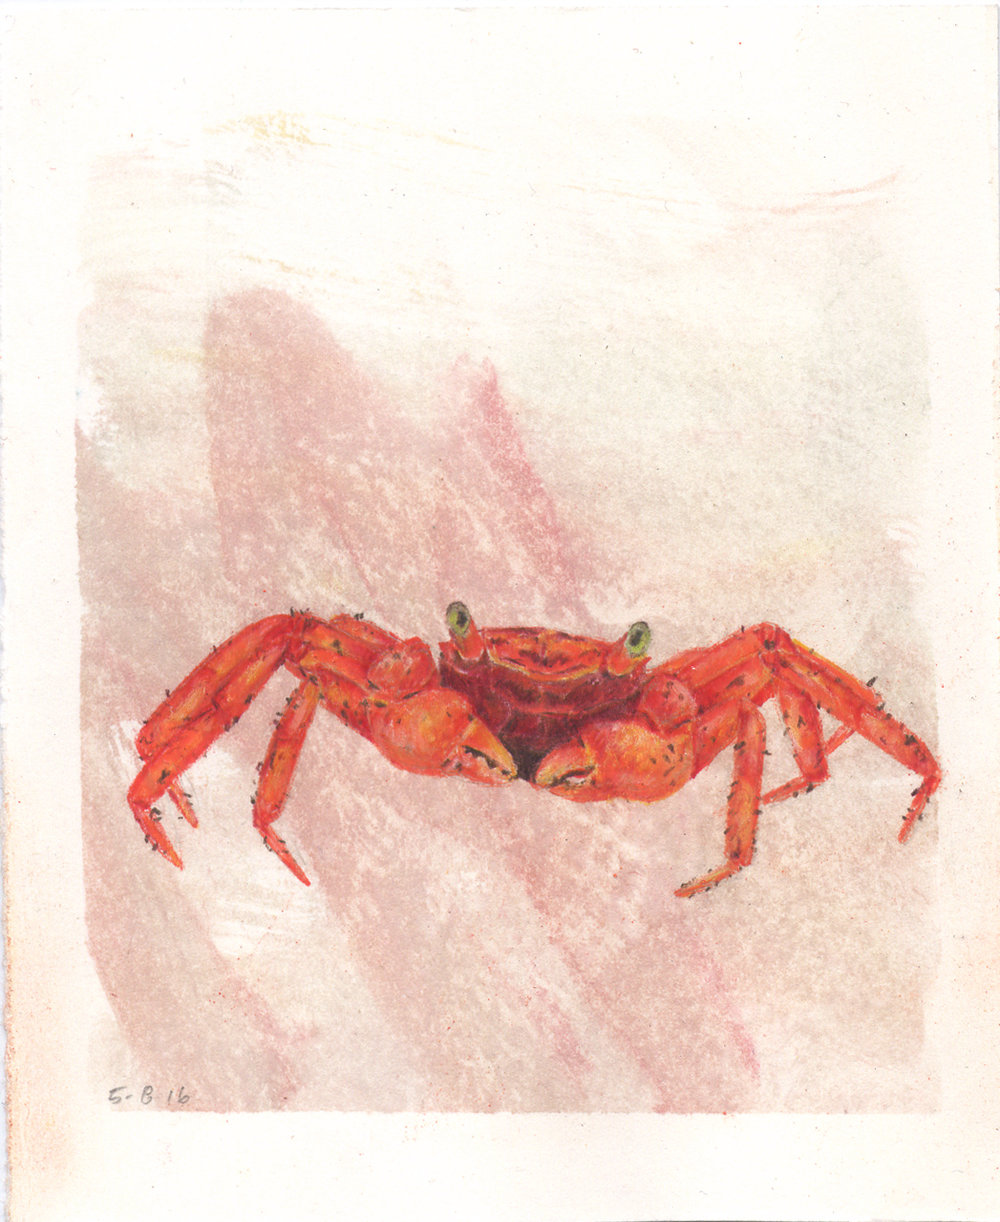 Mount Silam Red Crab